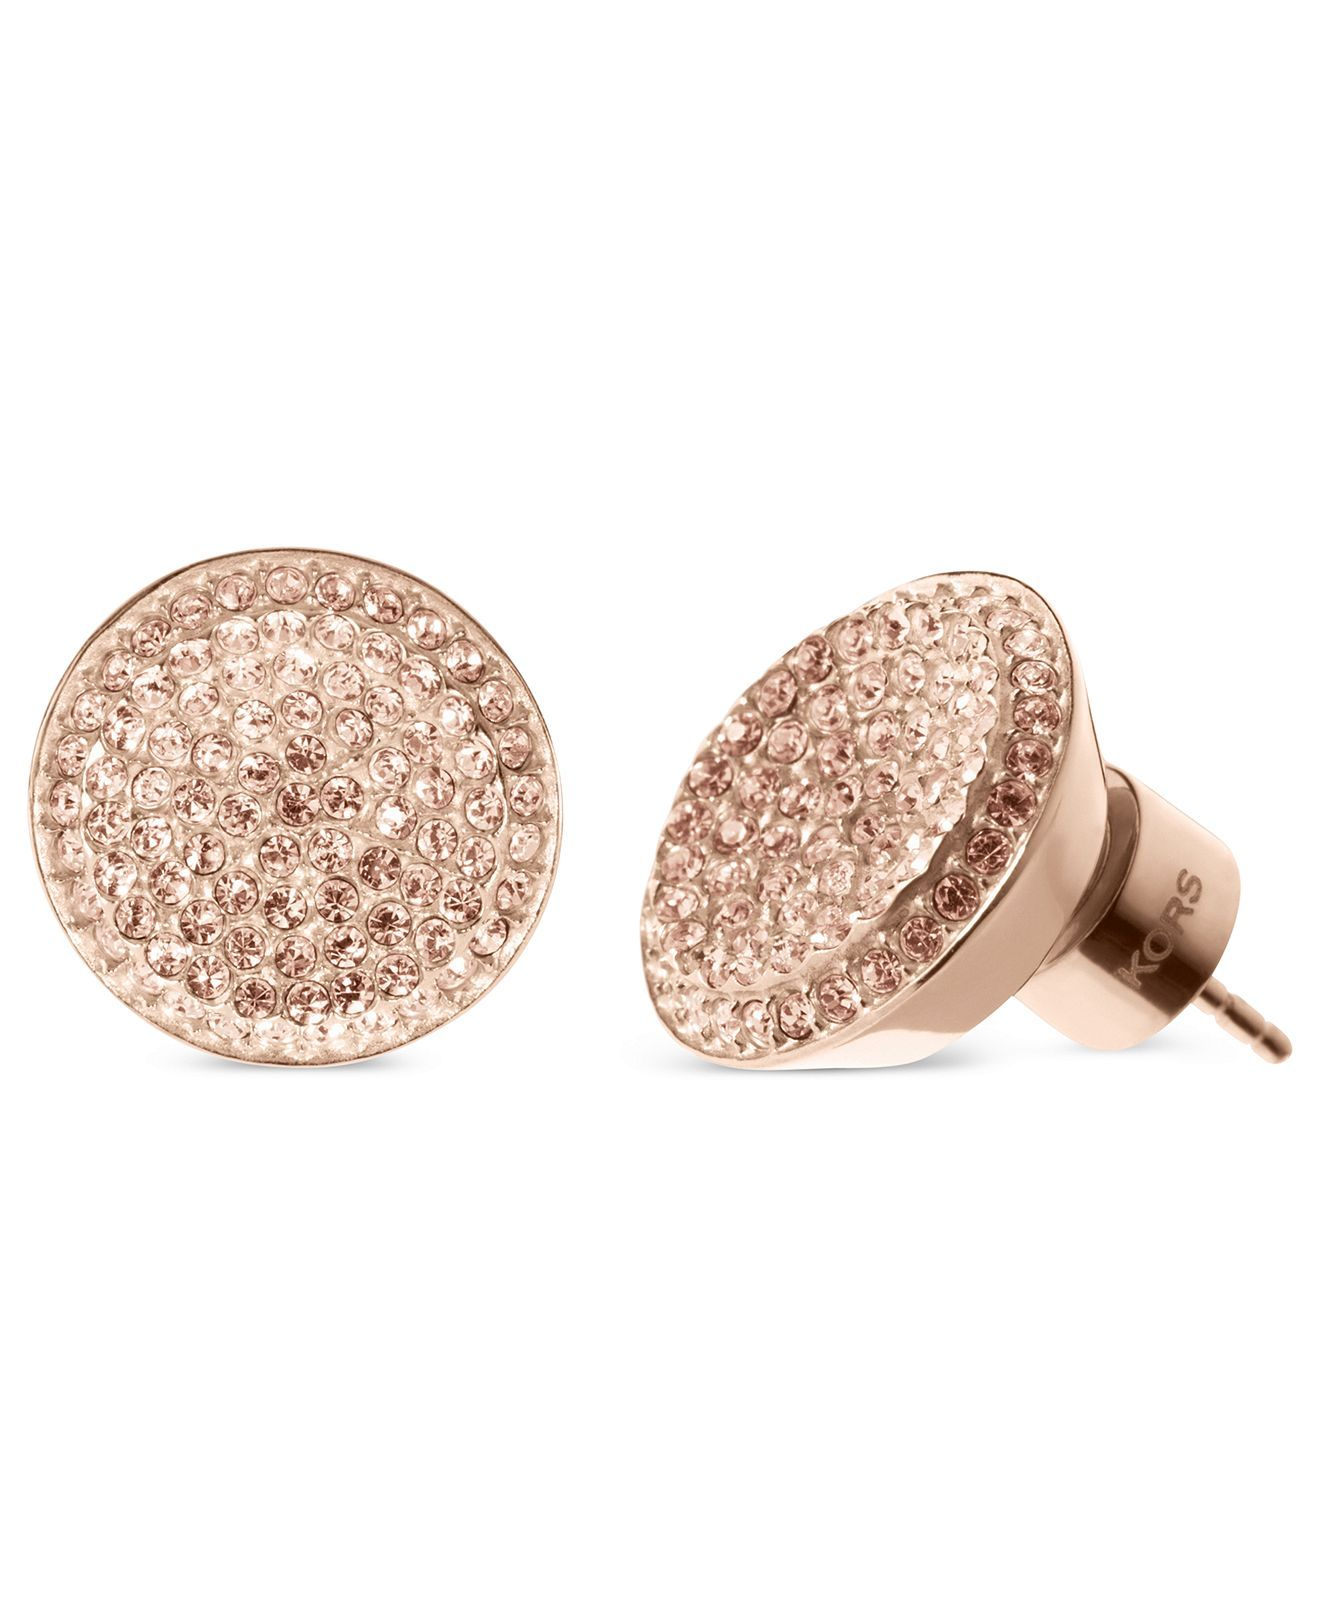 7a64bcb8424616 Michael Kors Earrings, Rose Gold-Tone Concave Glass Pave Stud Earrings -  Fashion Jewelry - Jewelry & Watches - Macy's